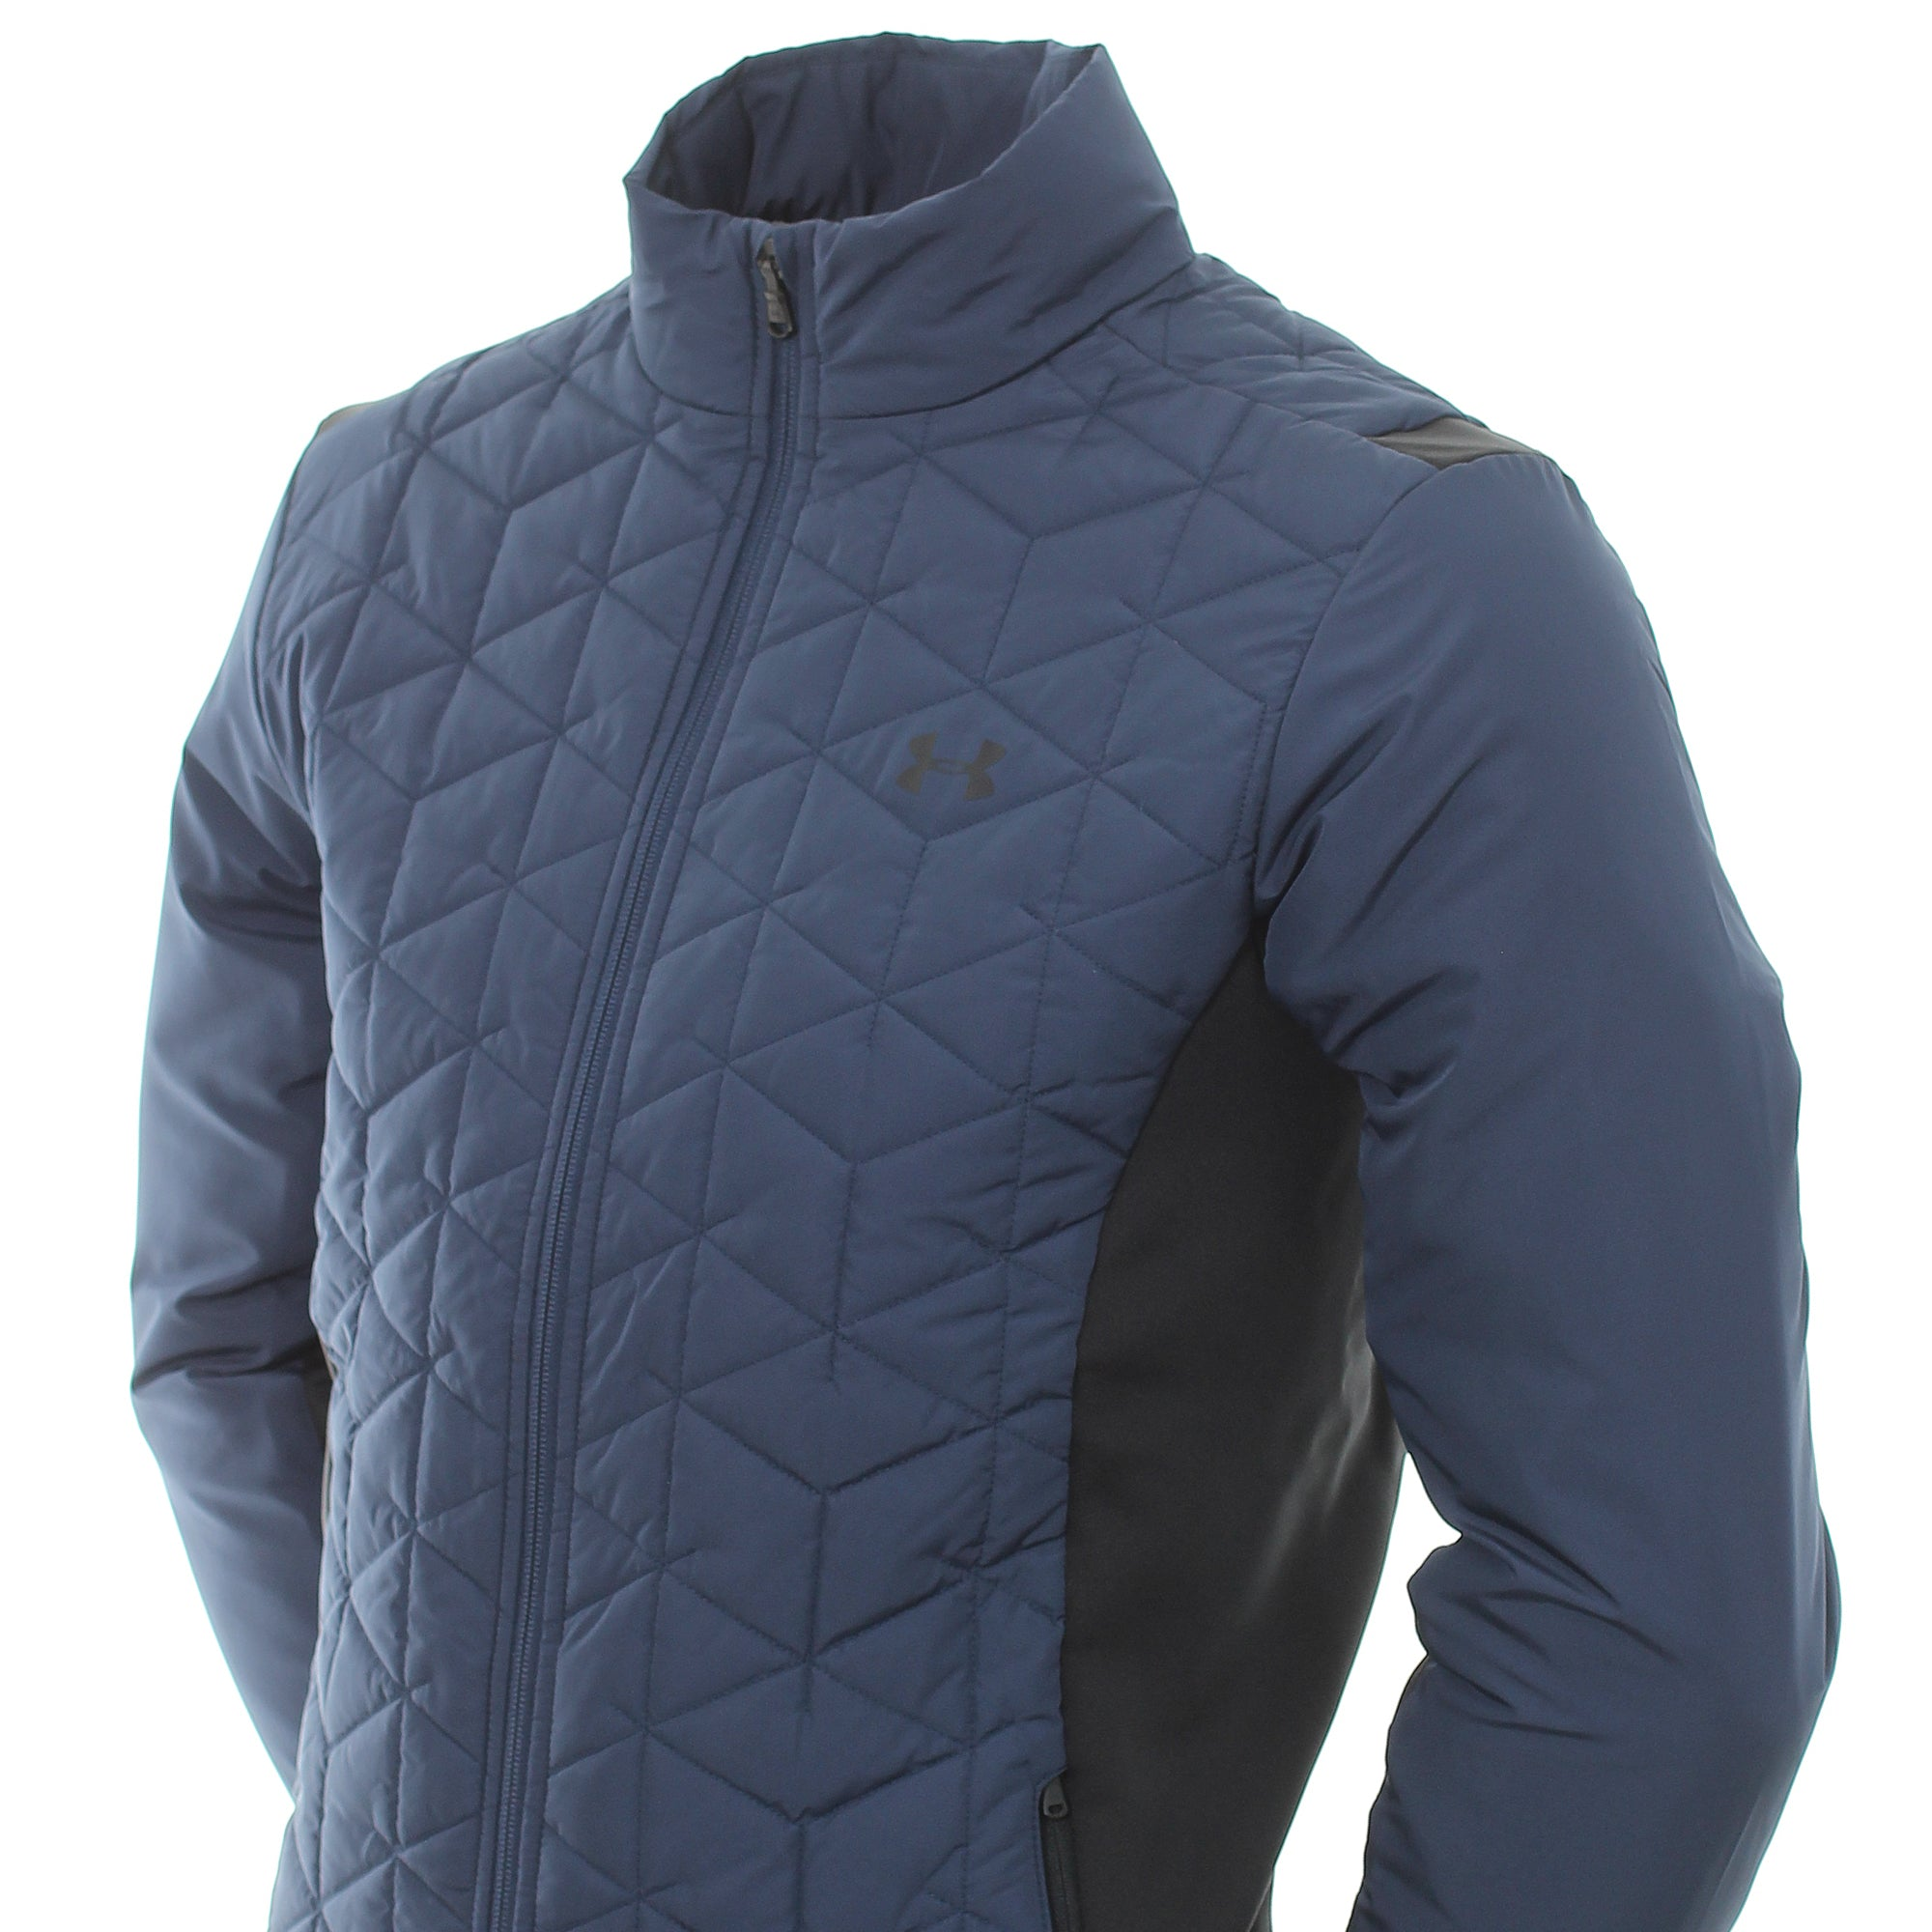 Under Armour Golf CG Reactor Elements Hybrid Jacket 1349982